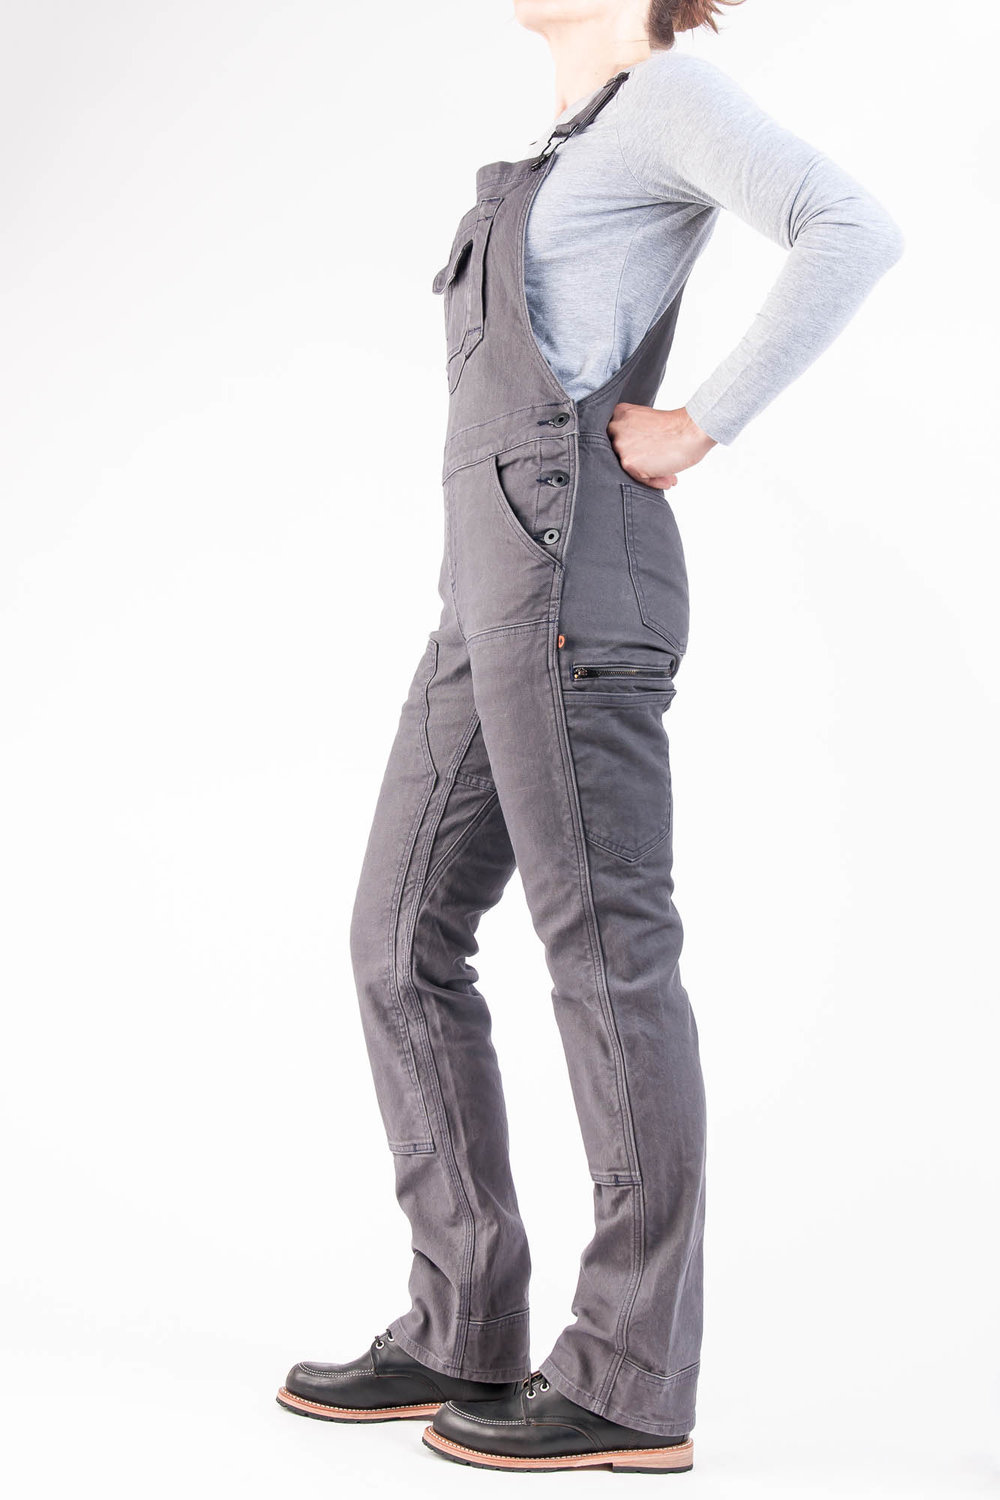 Freshley Overall Grey Canvas